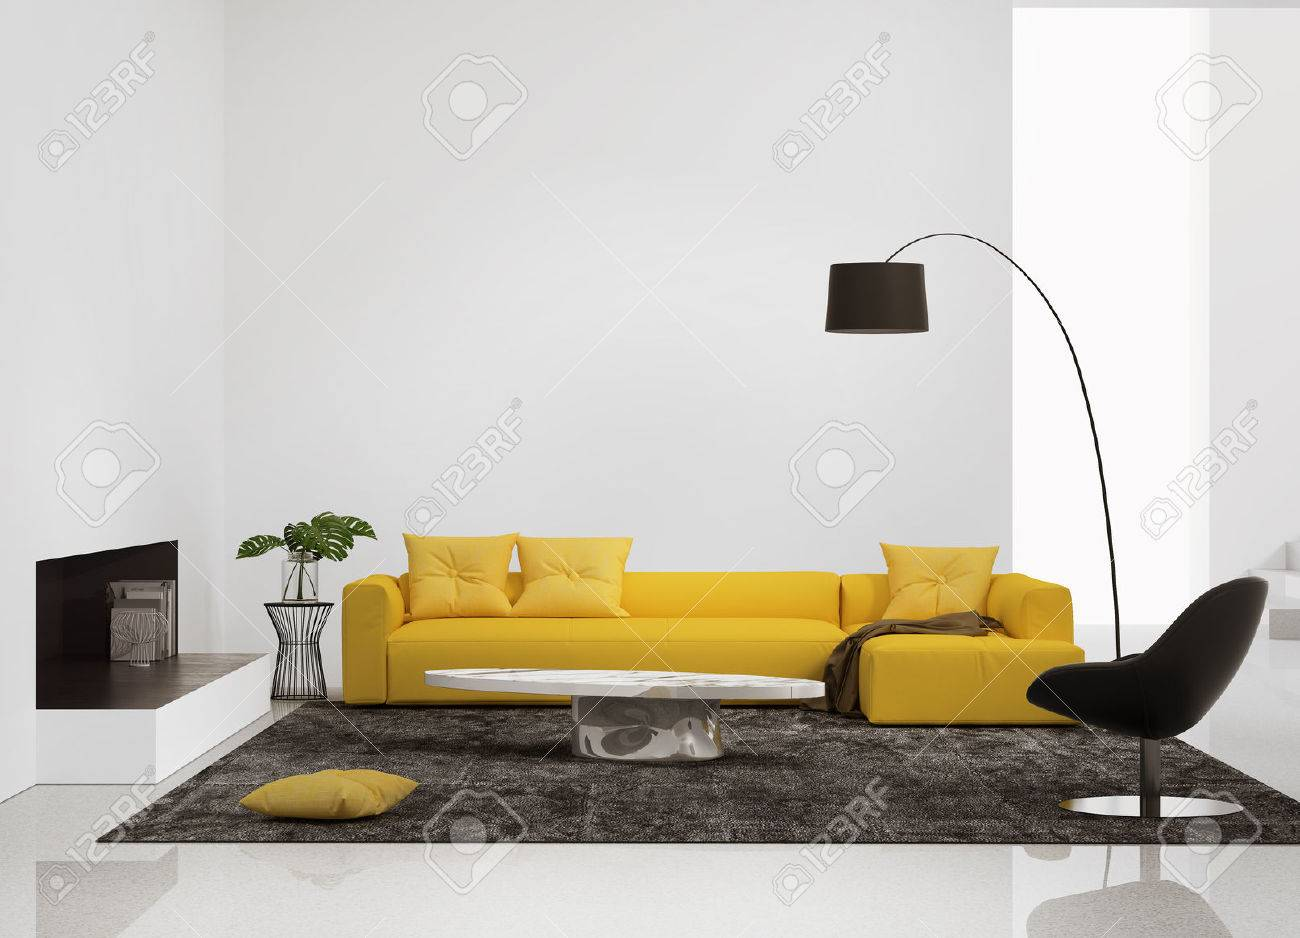 Modern Interior With A Yellow Sofa In The Living Room And A Leather Stock Photo Picture And Royalty Free Image Image 38988222